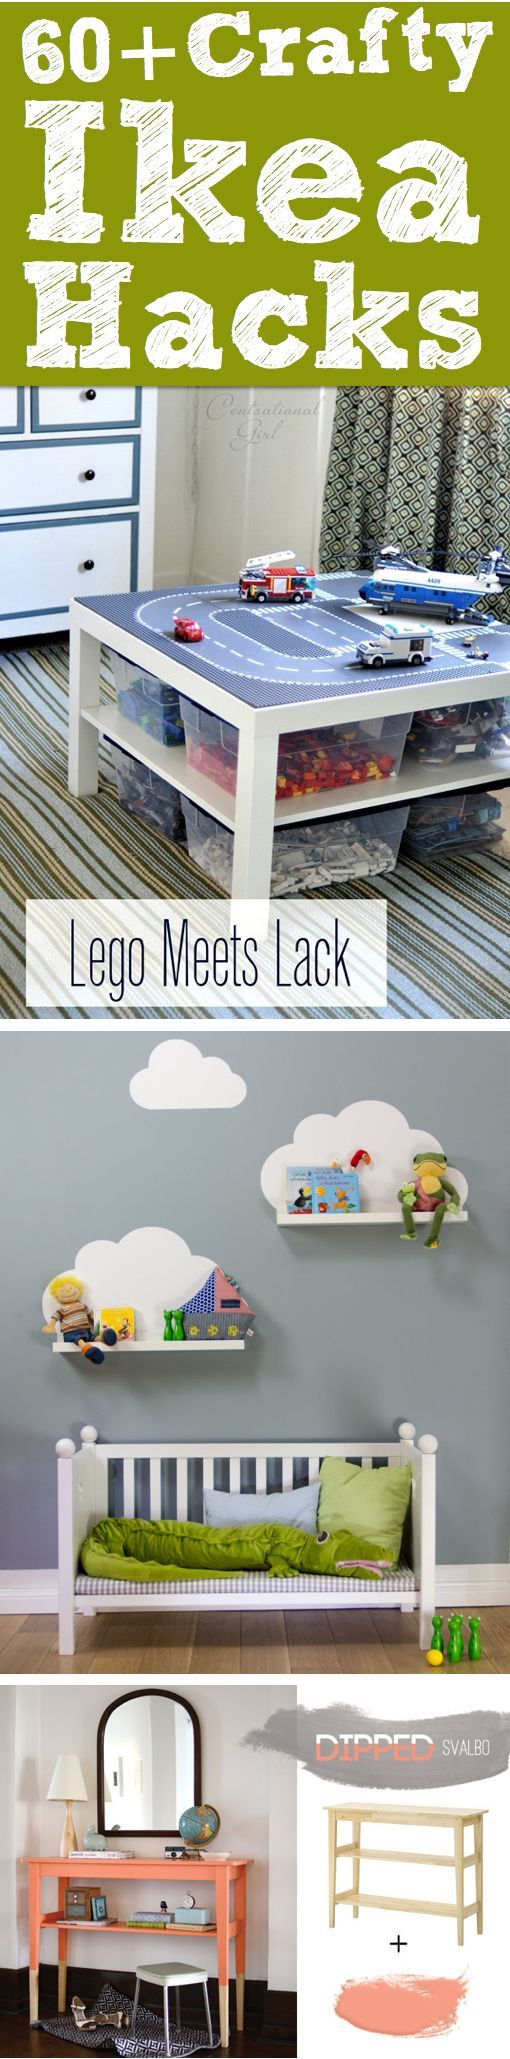 60++Crafty+Ikea+Hacks+To+Help+You+Save+Time+And+Money! Lego table ...